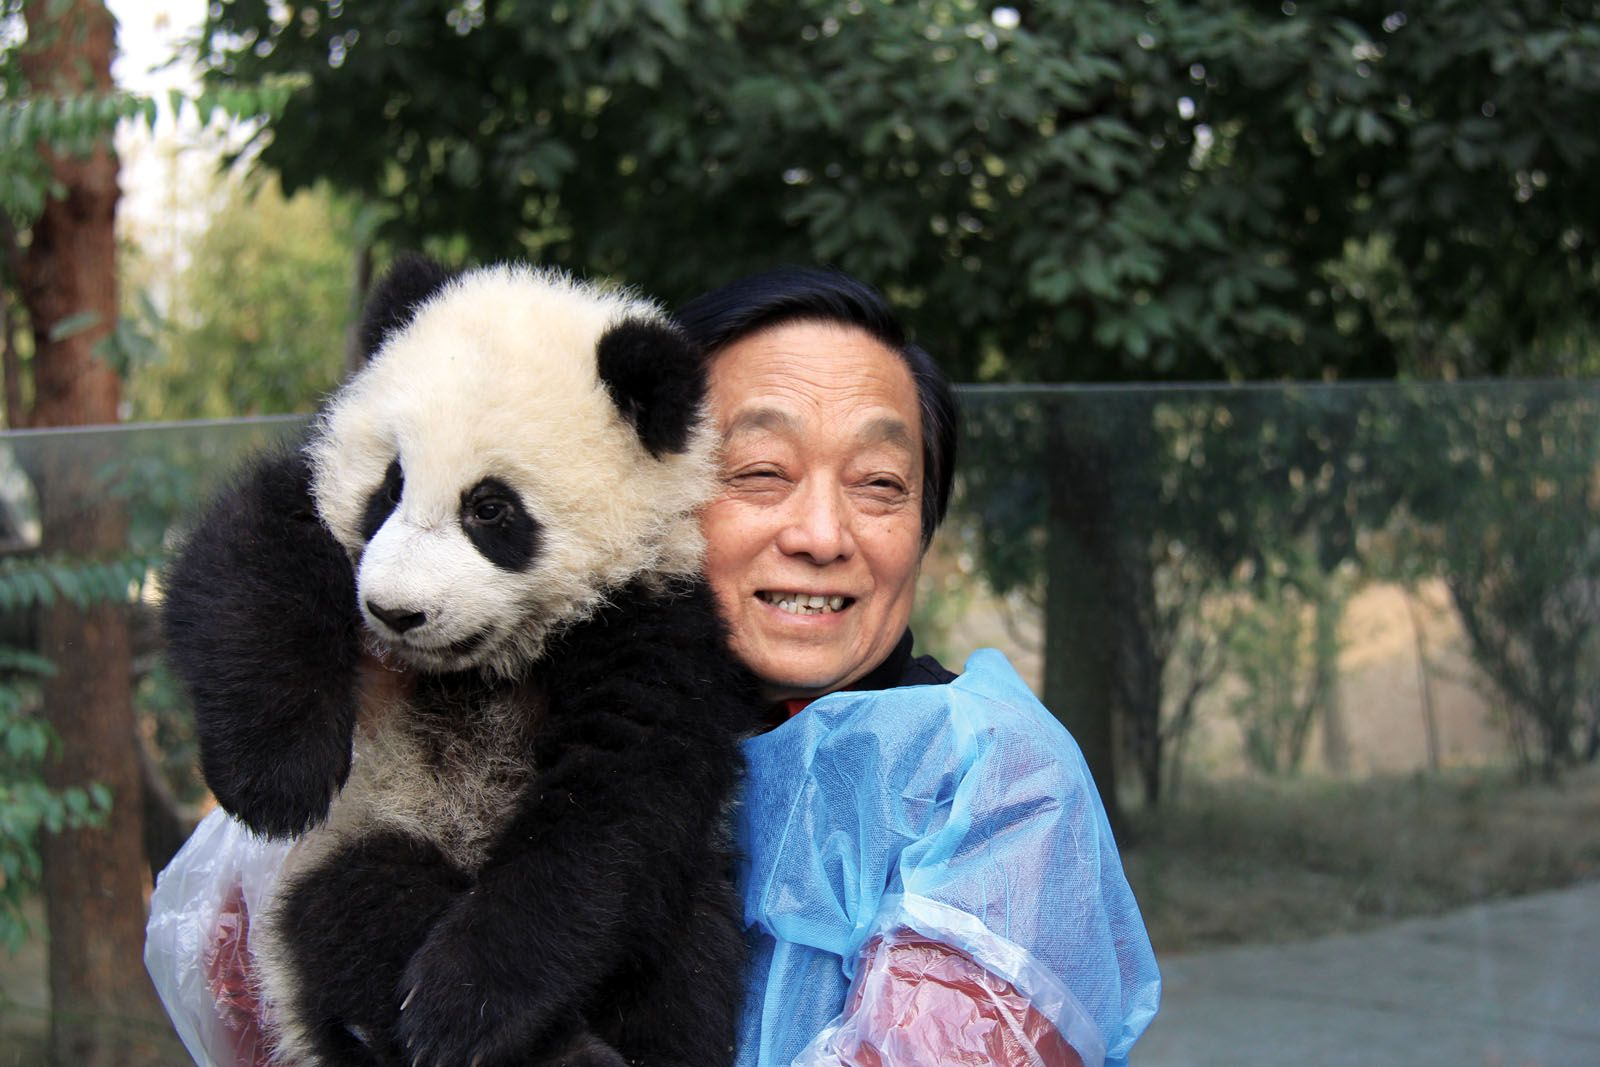 Artist Han Meilin at the China Conservation and Research Center for the Giant Panda with a giant panda cub—the inspiration for his work for years and now, his collection for Lalique